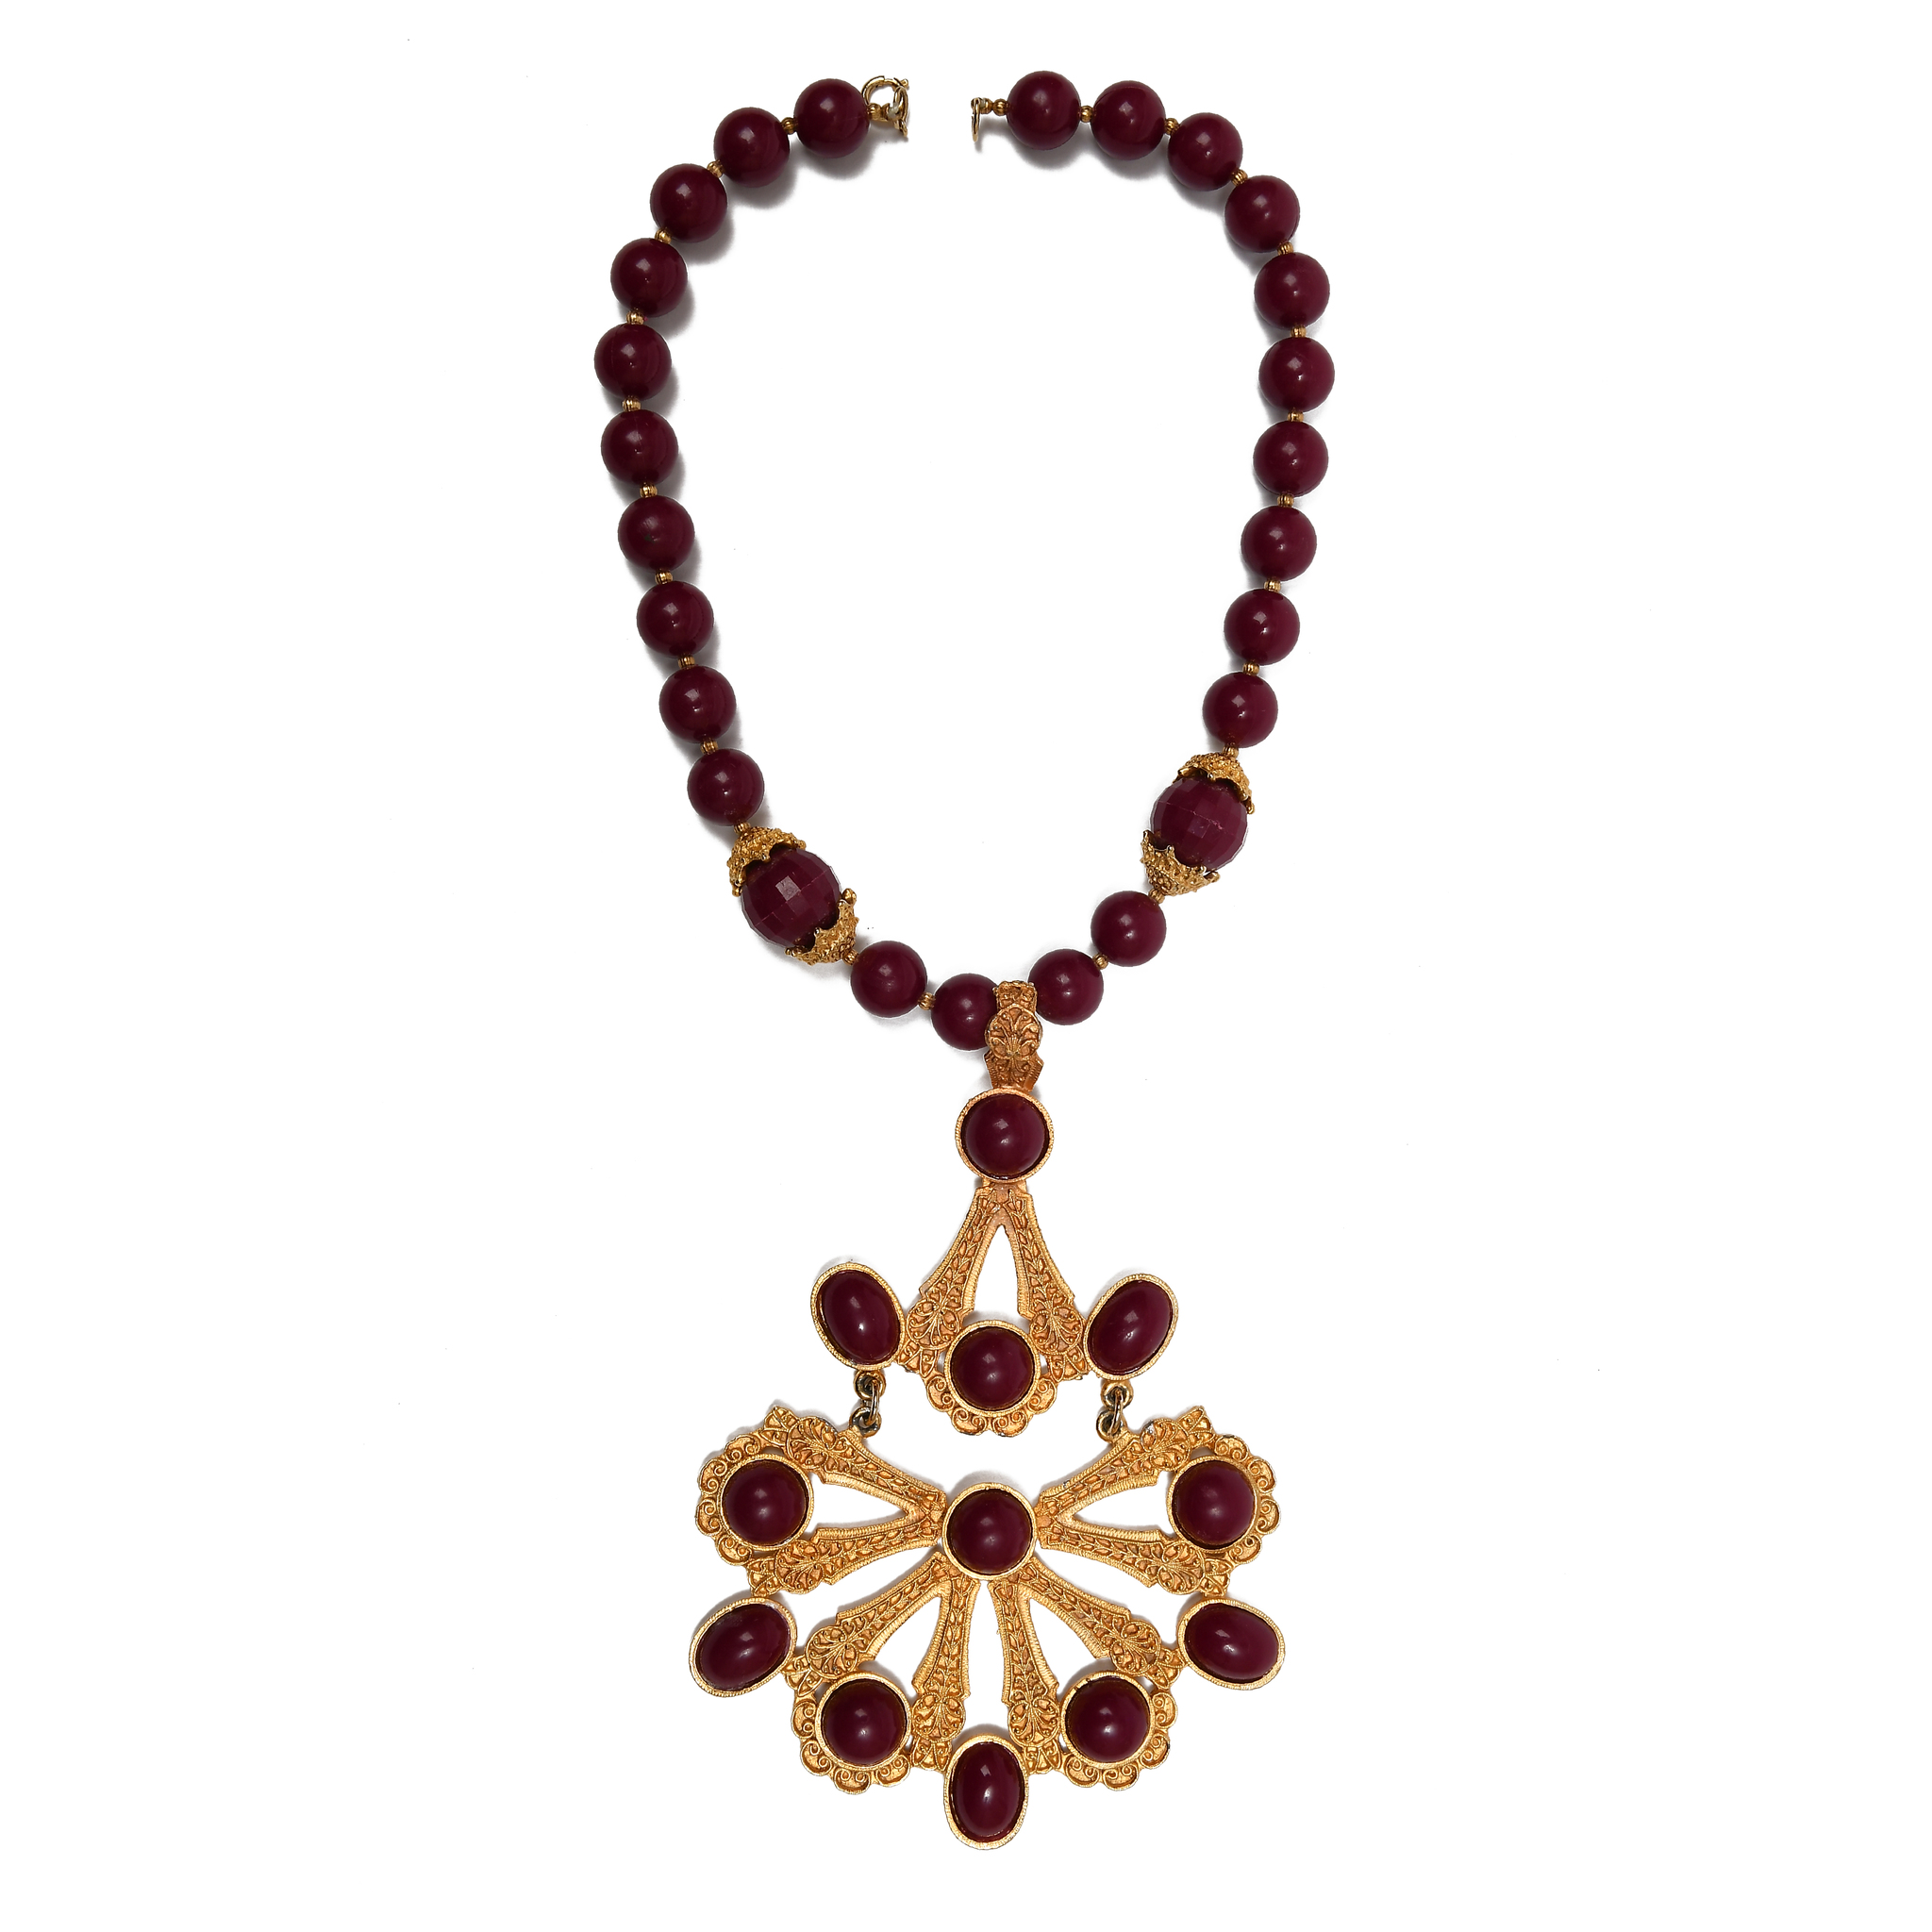 A magnificent necklace by SUL